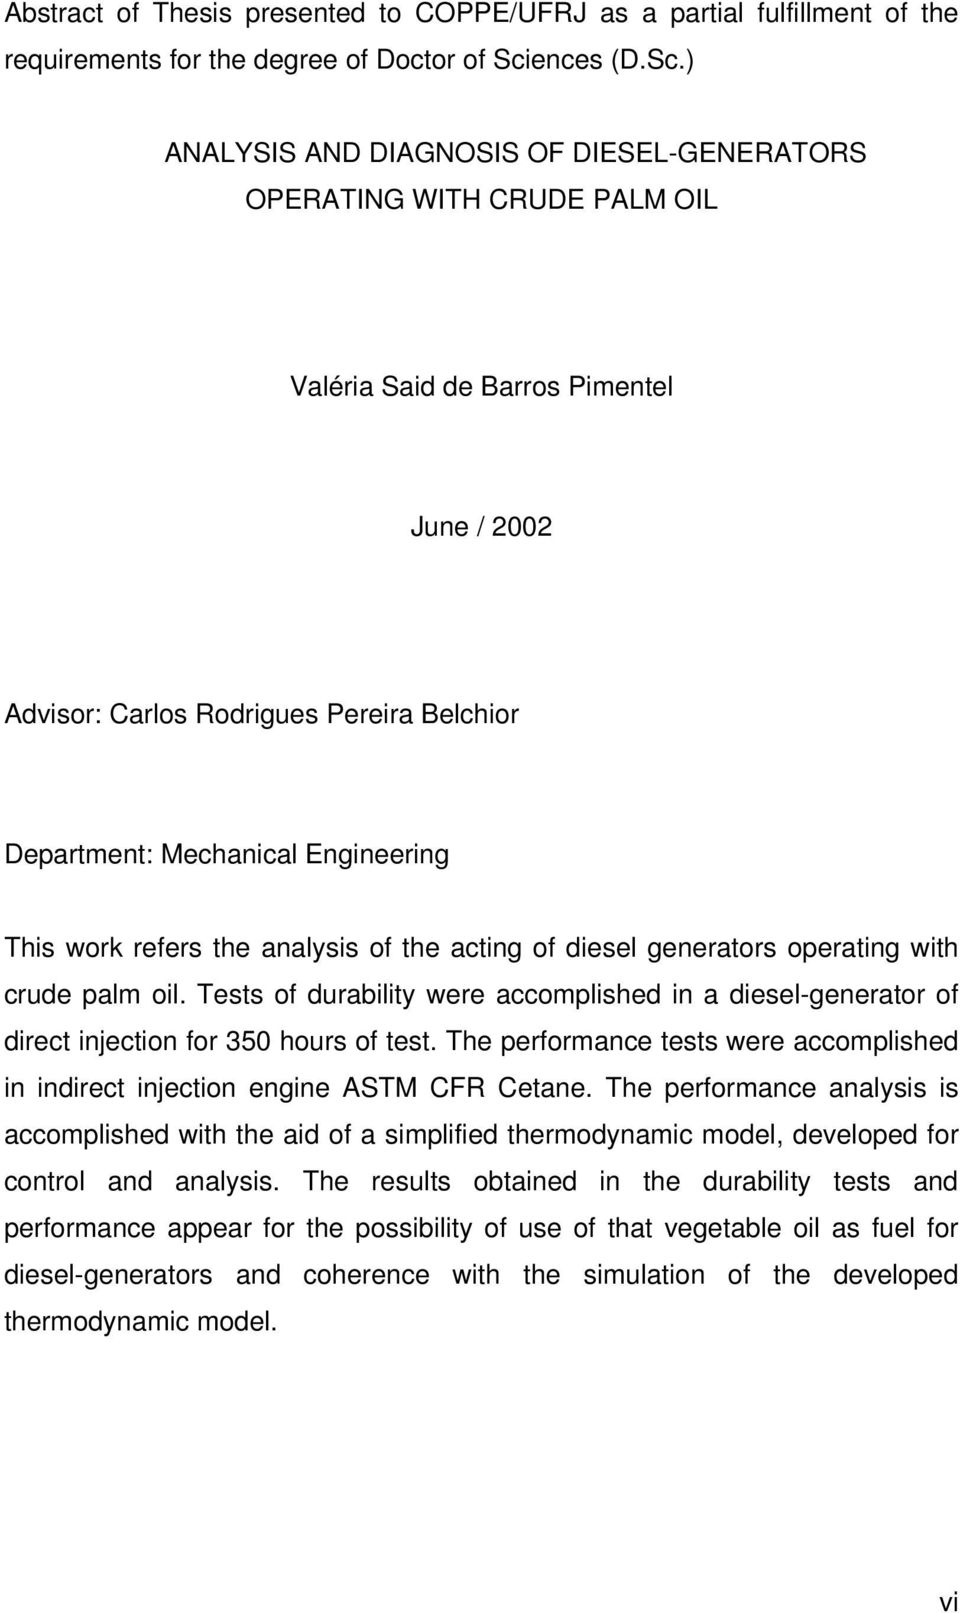 ) ANALYSIS AND DIAGNOSIS OF DIESEL-GENERATORS OPERATING WITH CRUDE PALM OIL Valéria Said de Barros Pimentel June / 2002 Advisor: Carlos Rodrigues Pereira Belchior Department: Mechanical Engineering